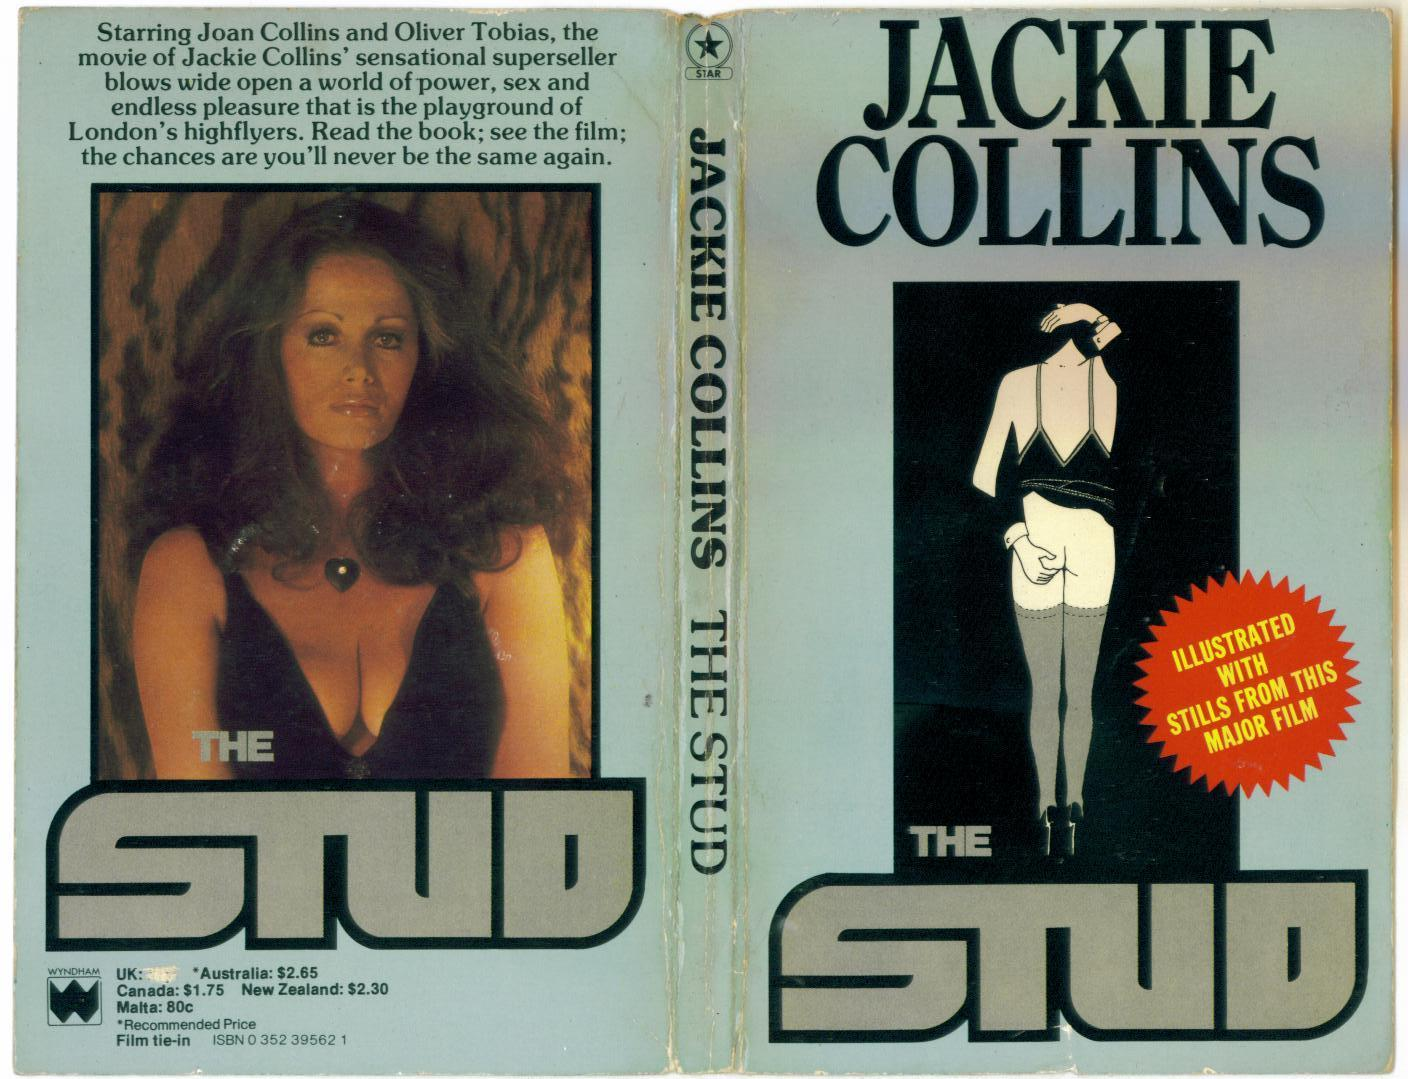 The Stud is the second novel by  Jackie Collins, first published in 1969 by W.H. Allen. It was made into a film starring her sister Joan in 1977.